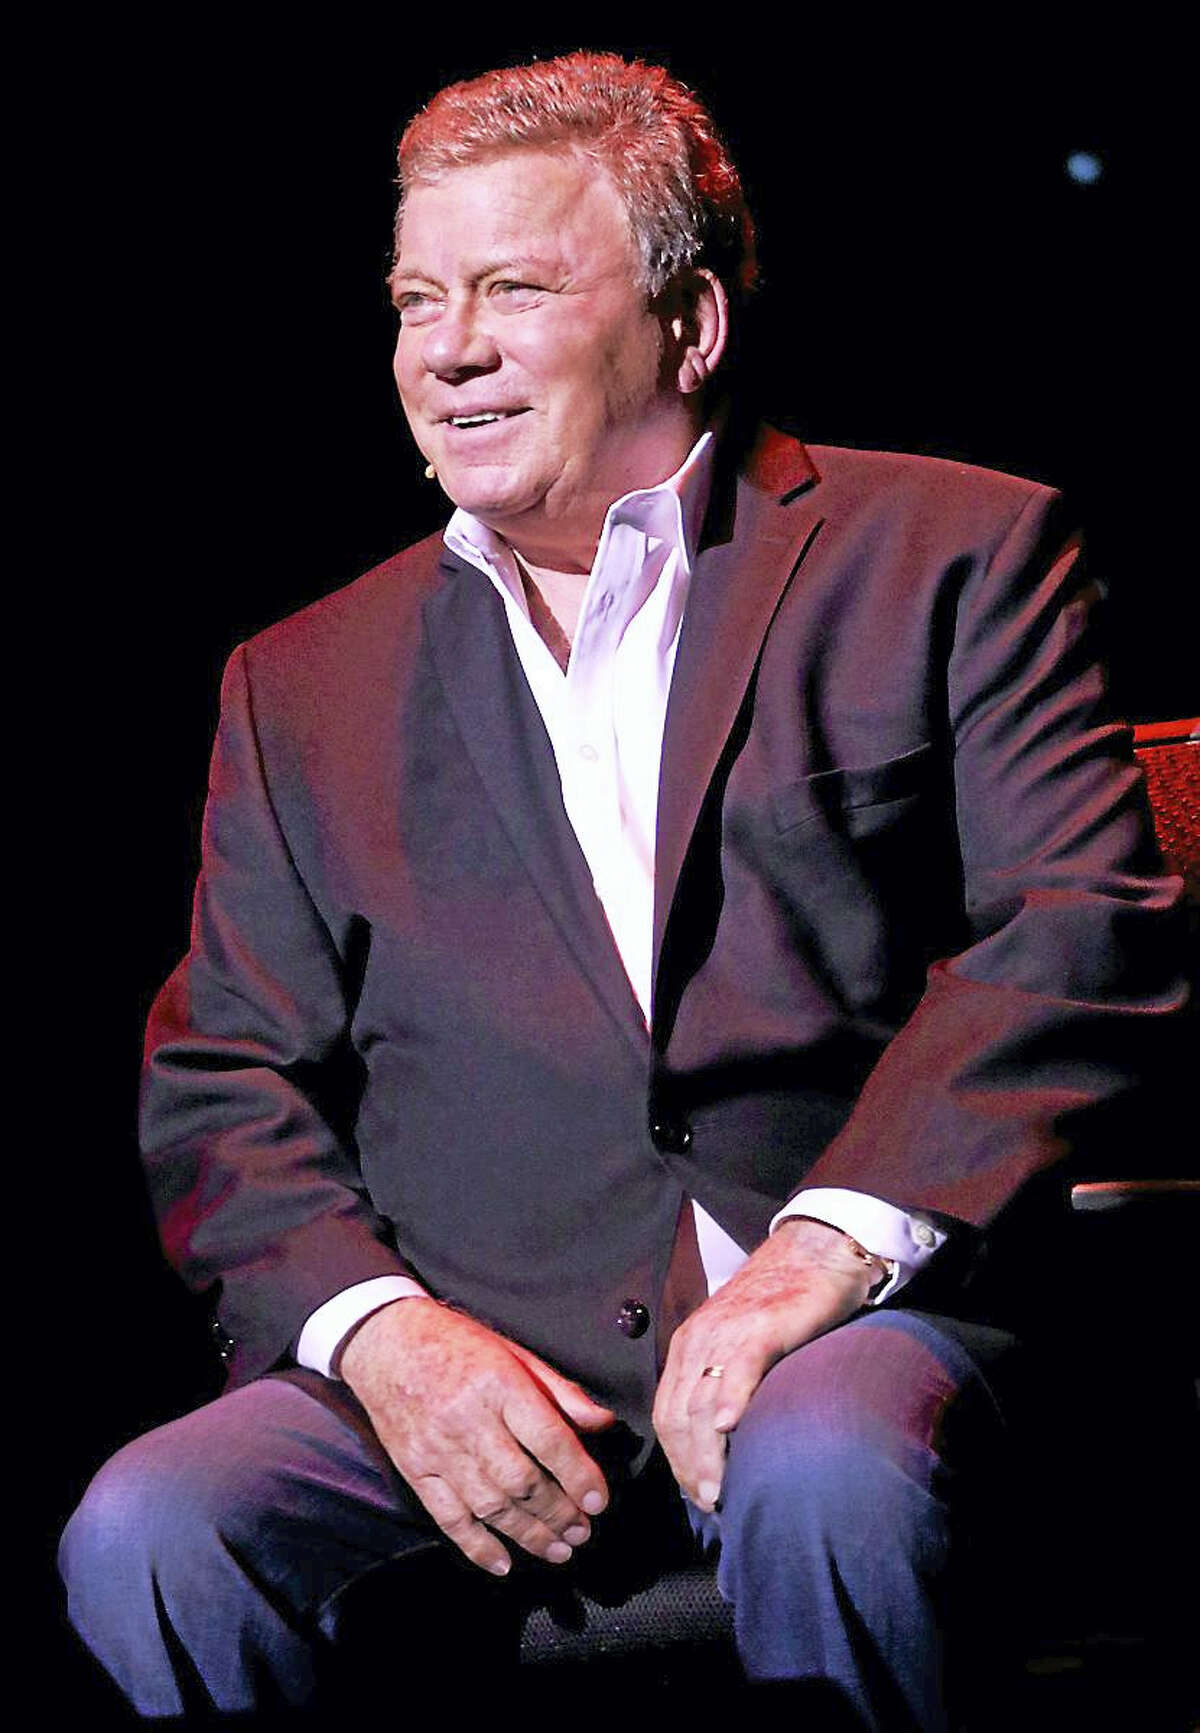 Photo by John AtashianActor, singer, author, producer, spokesman and comedian William Shatner is shown performing on stage during his concert appearance at the Foxwoods Resort Casino in Mashantucket on Saturday, Feb. 6. Shatner entertained the capacity crowd of fans with conversation and stories about his career and life. To view the complete line up of upcoming entertainment coming to Foxwood, visit www.foxwoods.com